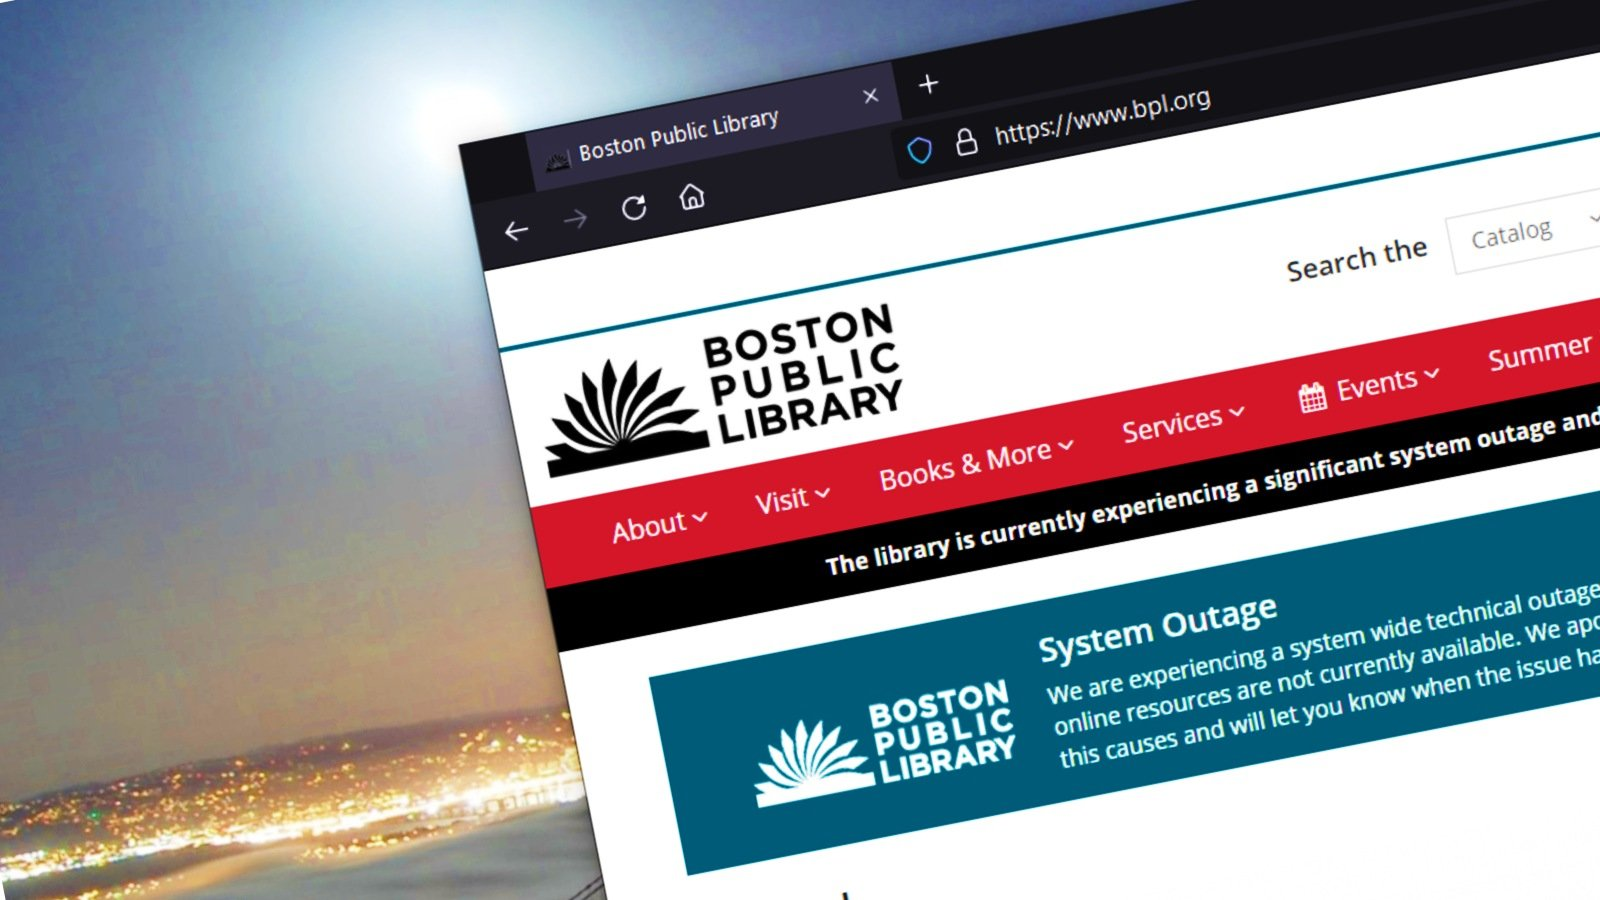 Boston Public Library discloses cyberattack, system-wide technical outage